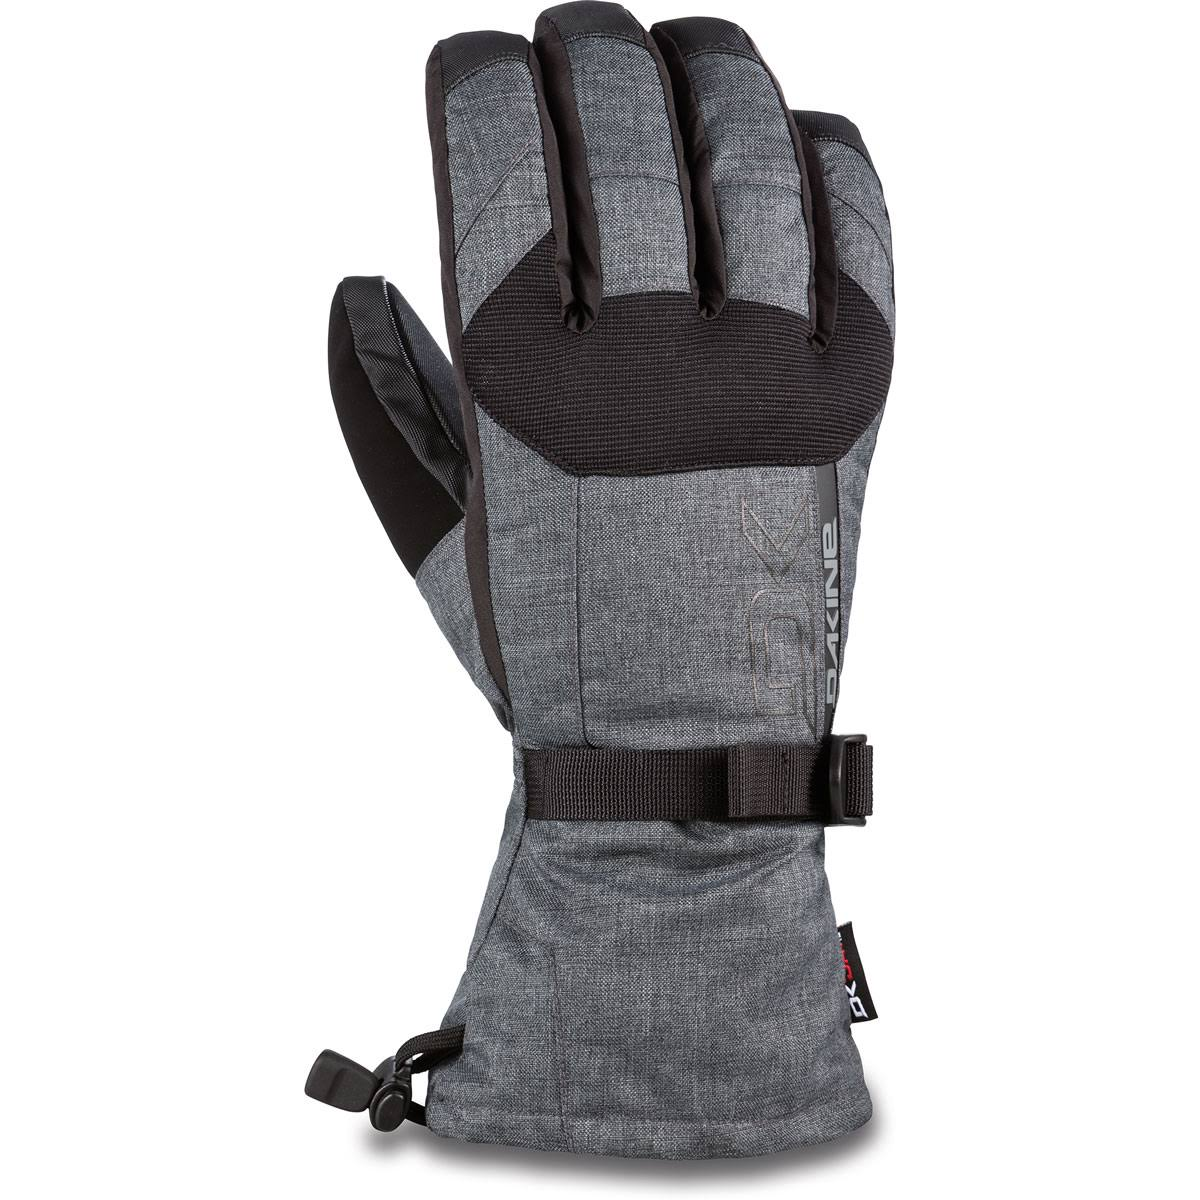 DaKine Men's Scout Gloves - Carbon, Large